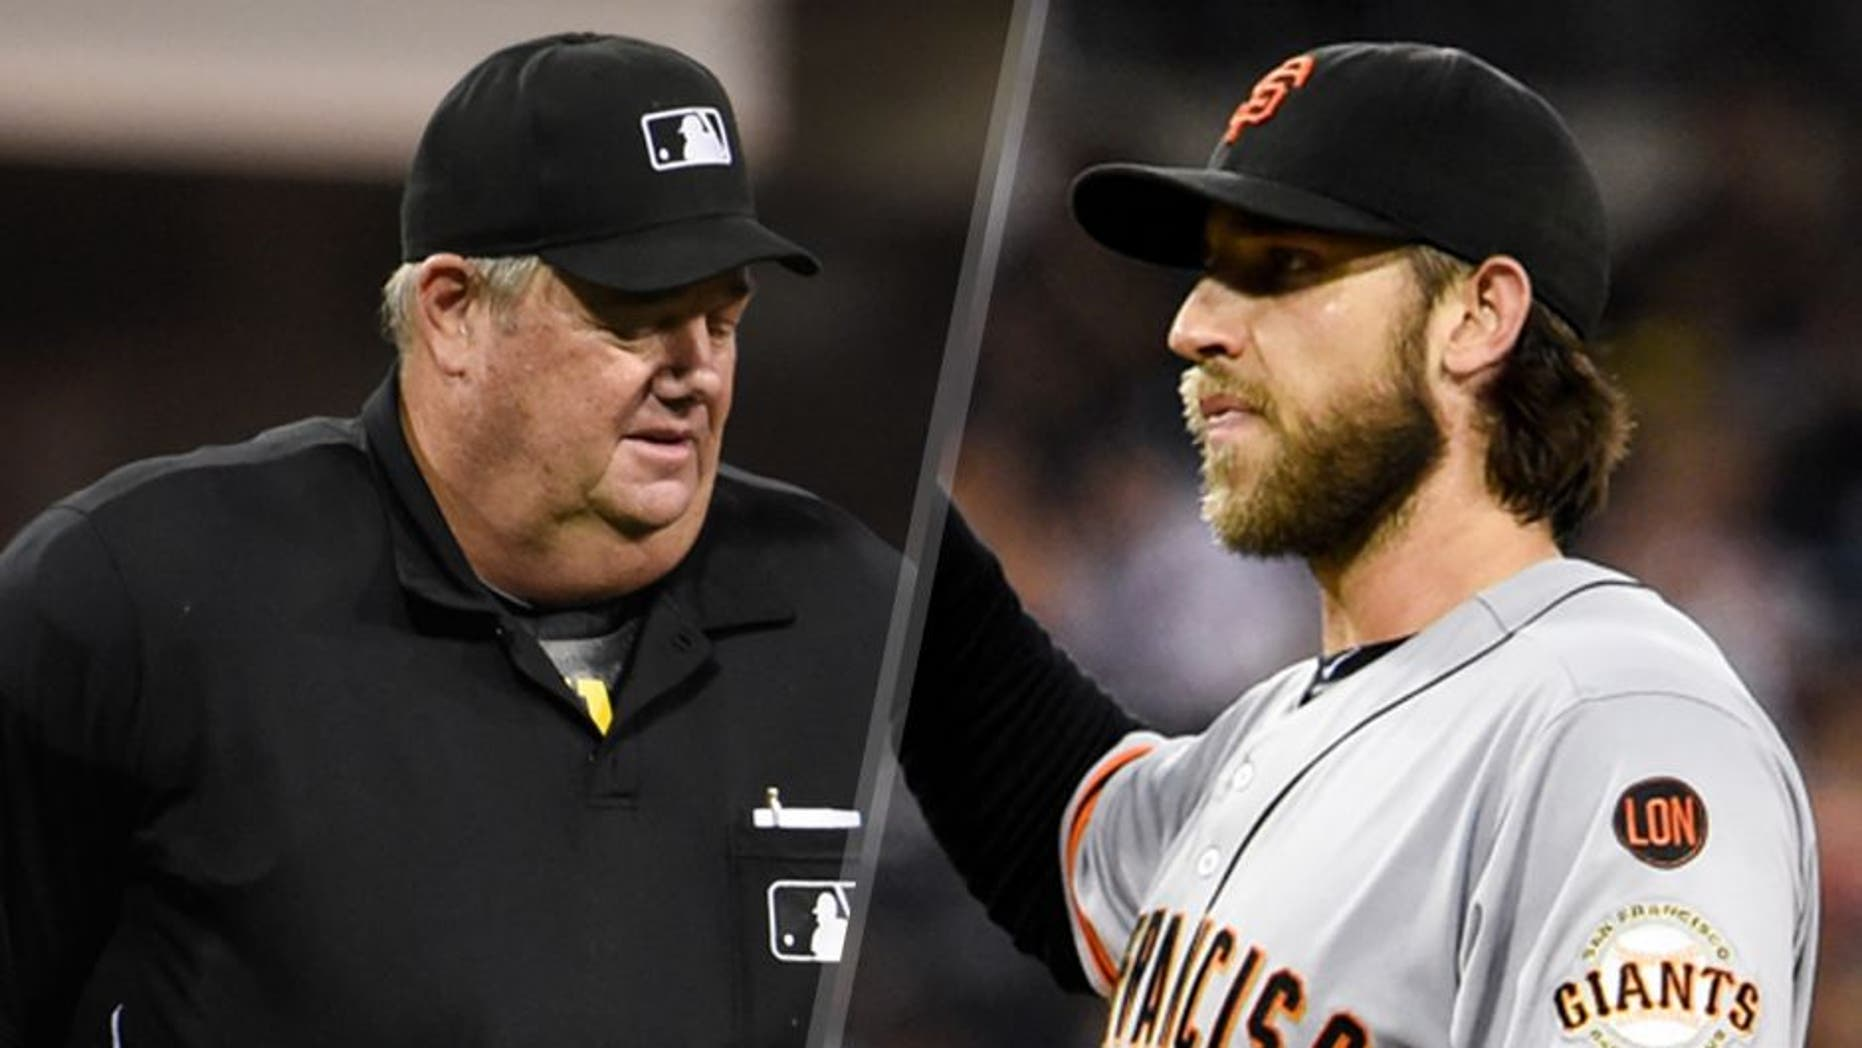 SAN DIEGO, CA - SEPTEMBER 24: Manager Pat Murphy #24 of the San Diego Padres argues a call with umpire Joe West during the fifth inning of a baseball game against the San Francisco Giants at Petco Park September 24, 2015 in San Diego, California. (Photo by Denis Poroy/Getty Images) SAN DIEGO, CA - SEPTEMBER 24: Madison Bumgarner #40 of the San Francisco Giants stands on the mound as Derek Norris #3 of the San Diego Padres rounds the bases after hitting a three-run home run during the second inning of a baseball game at Petco Park September 24, 2015 in San Diego, California. (Photo by Denis Poroy/Getty Images)